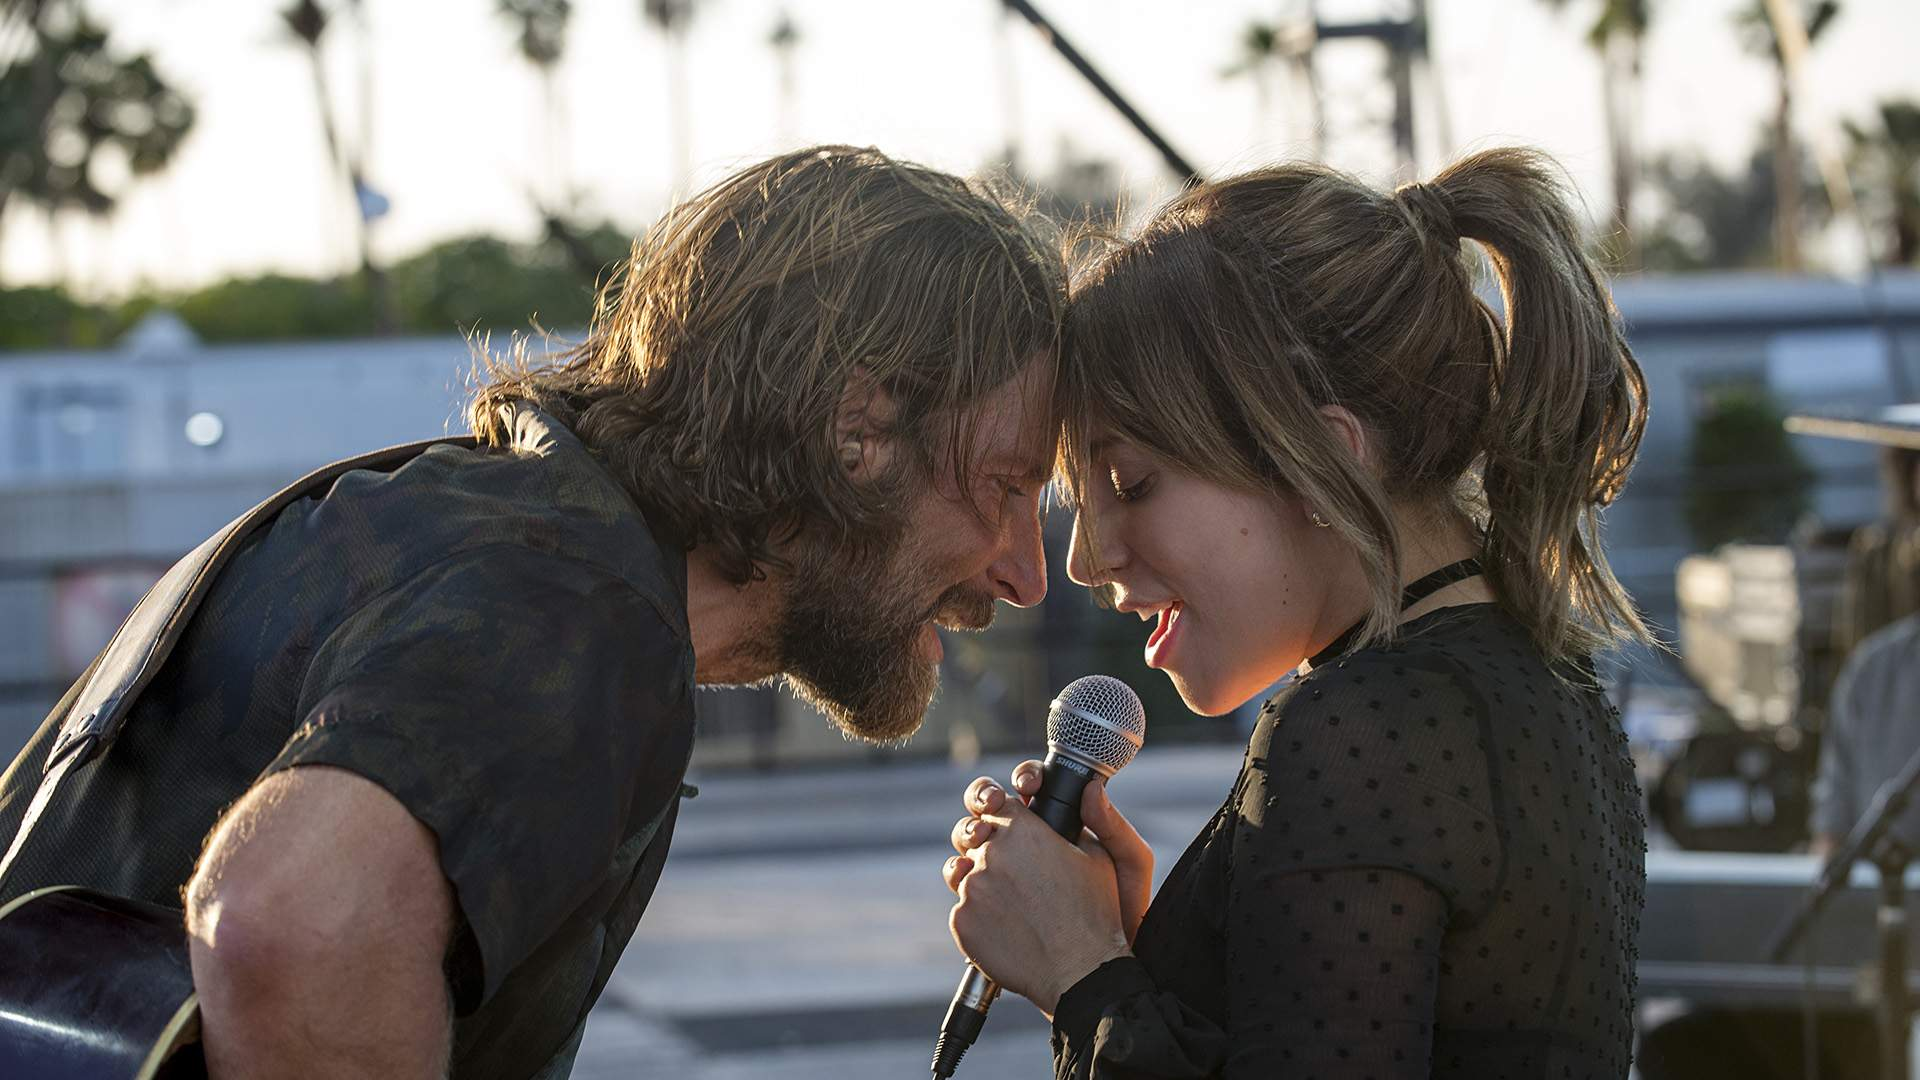 'Roma', 'A Star Is Born' and 'Black Panther' Lead the Way at This Year's Oscar Nominations